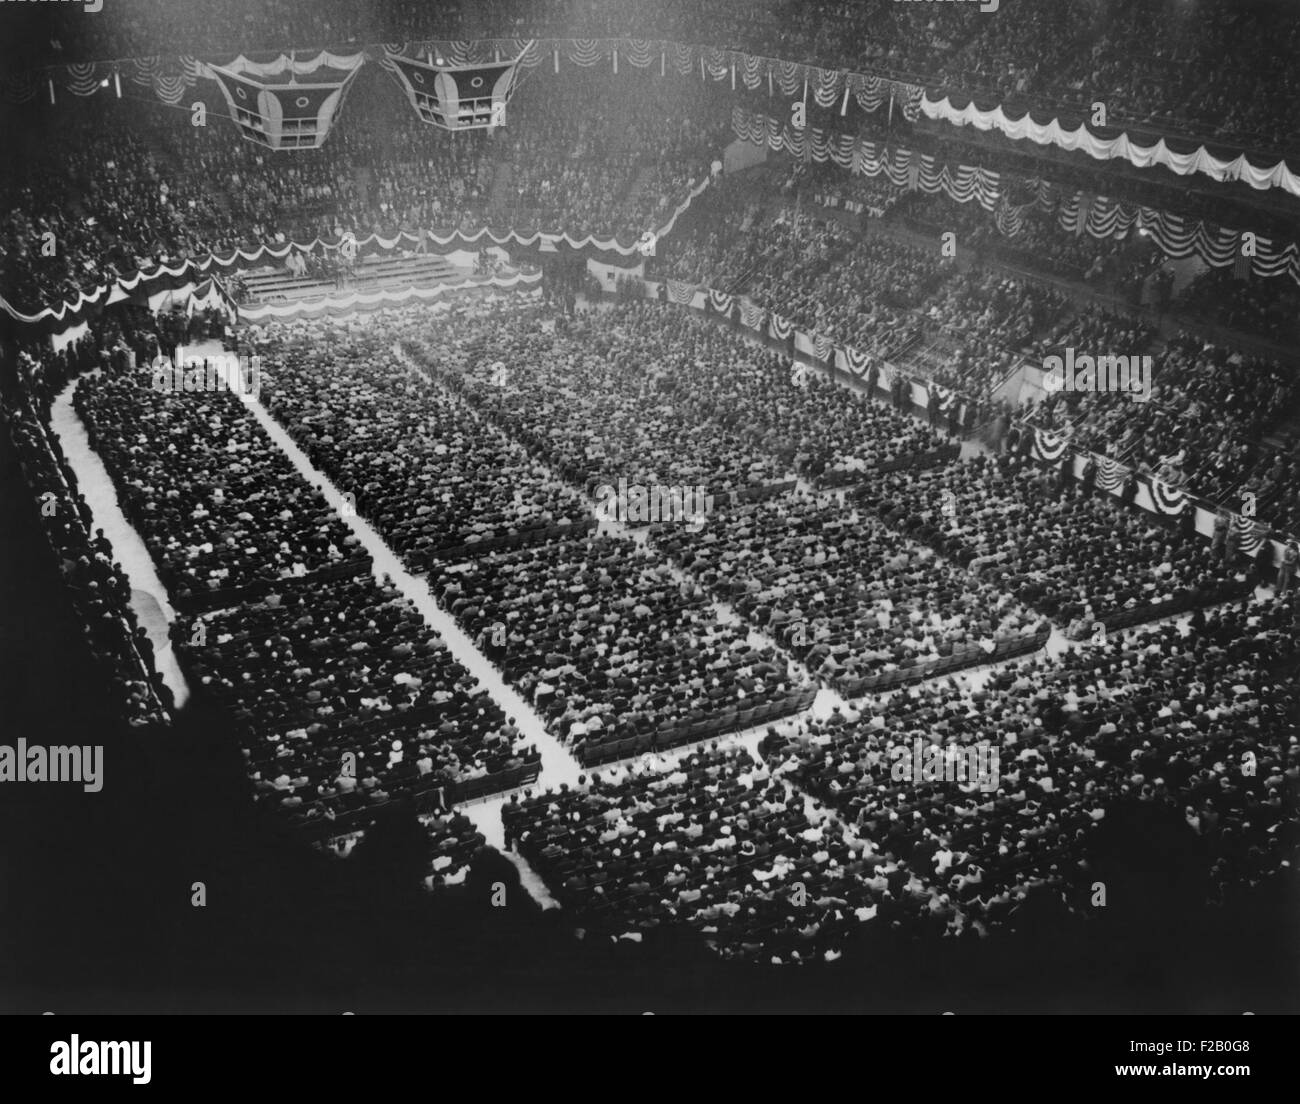 Father Coughlan spoke to a crowd of 17,000 in Madison Square Garden, New York. May 22, 1935. He appealed to union - Stock Image